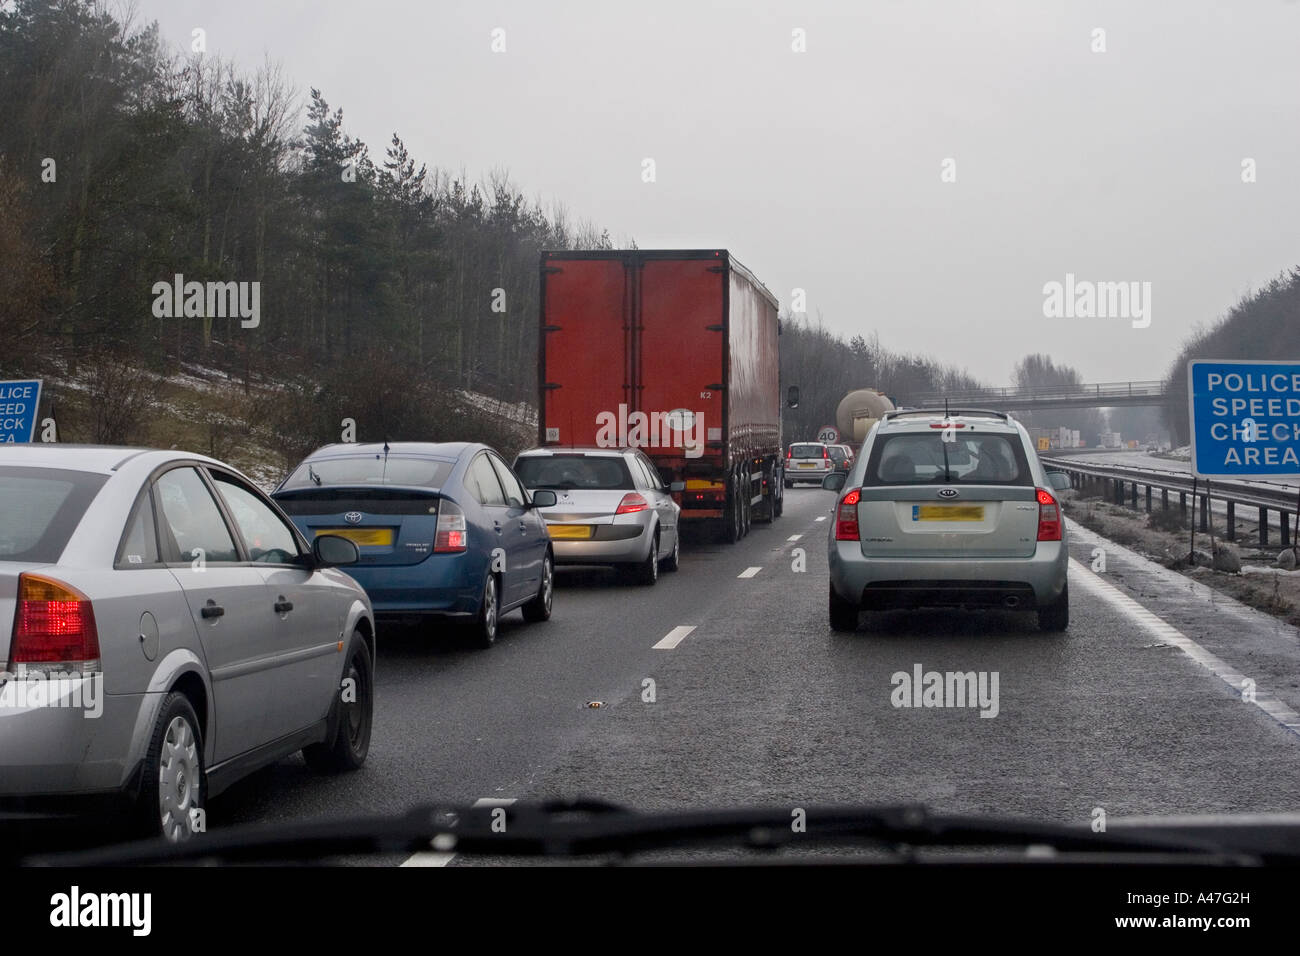 bad driving conditions in snow and wet weather seen through car stock photo royalty free image. Black Bedroom Furniture Sets. Home Design Ideas